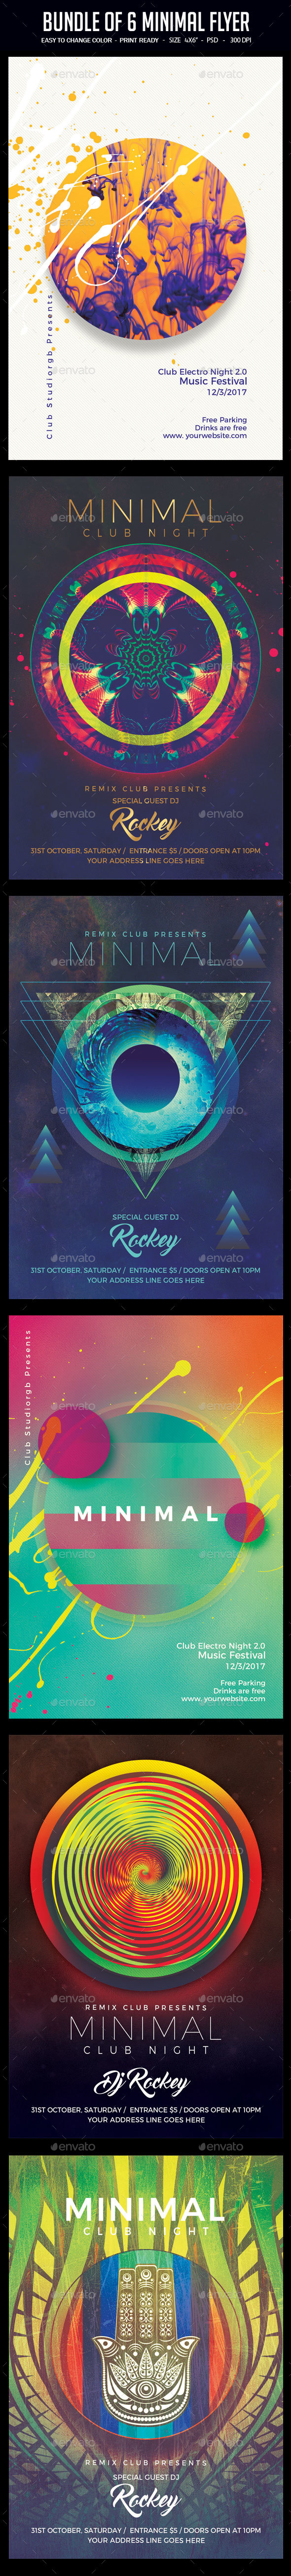 Bundle of 6 Minimal Flyers - Clubs & Parties Events